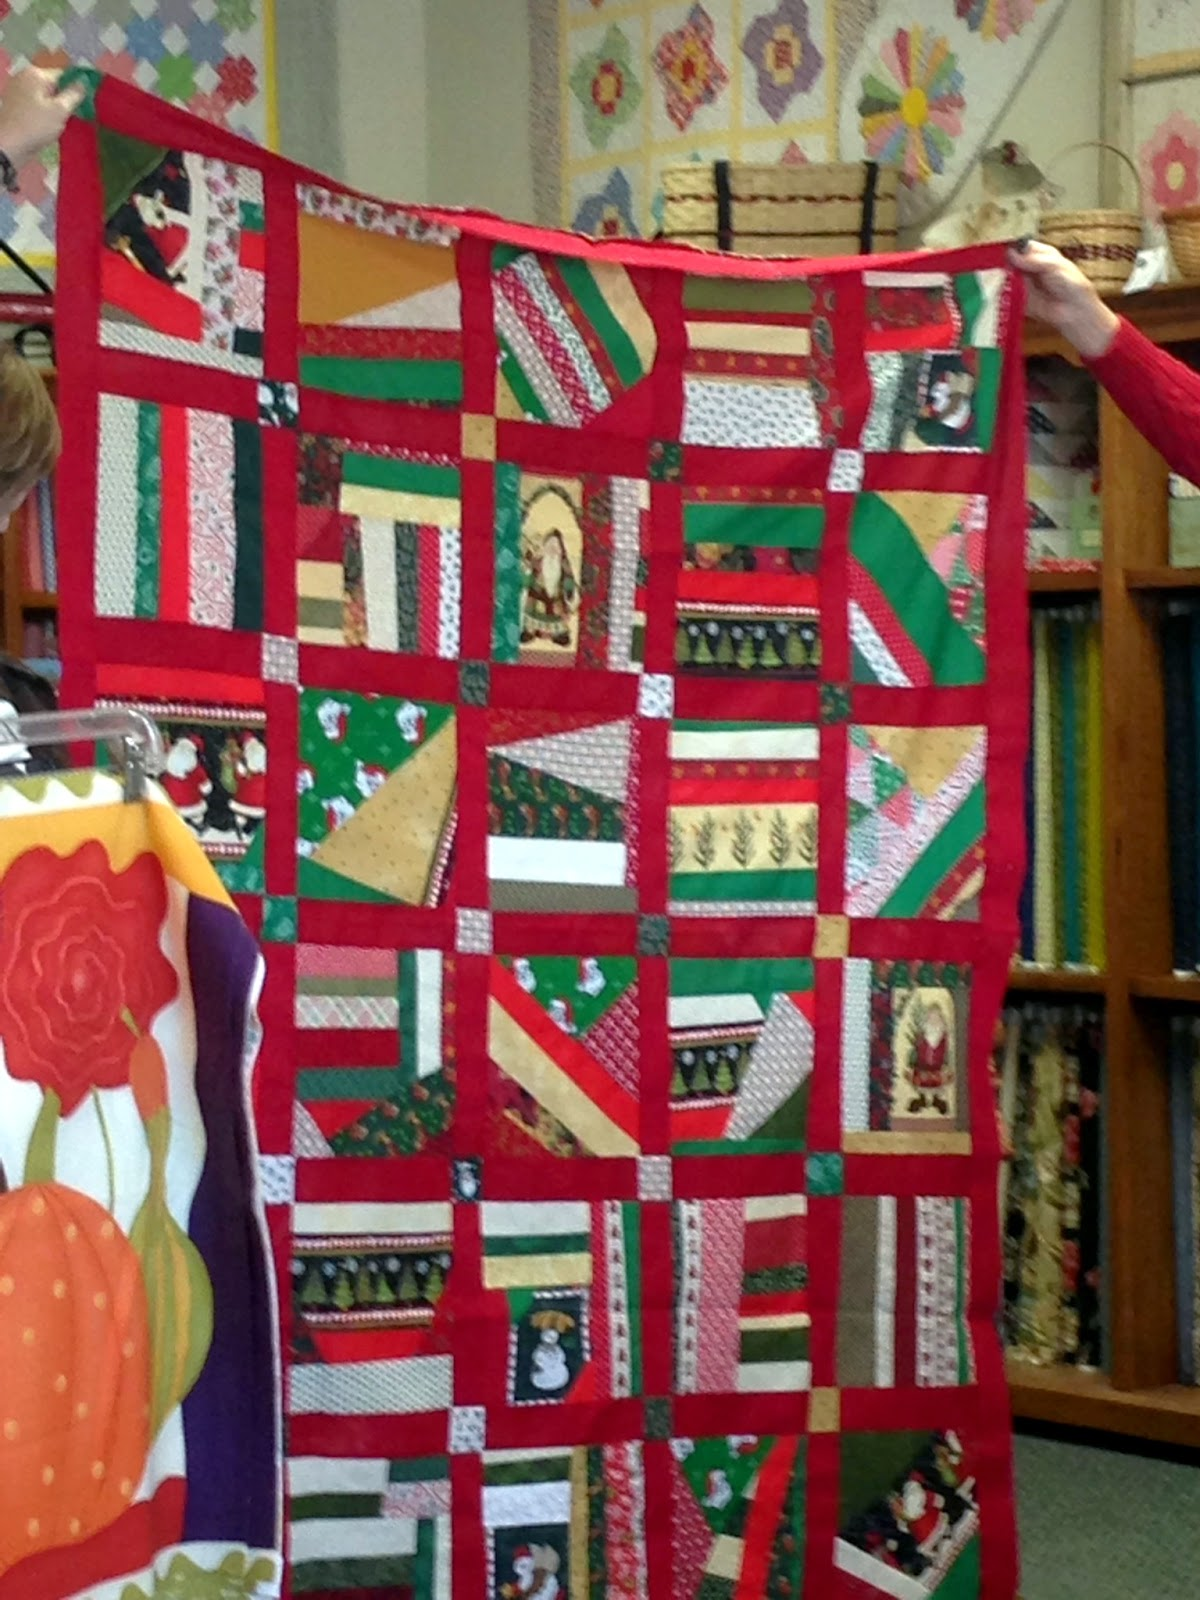 Attic Window Quilt Shop: ALL KINDS OF QUILTS AT SHOW-N-TELL : kinds of quilting - Adamdwight.com